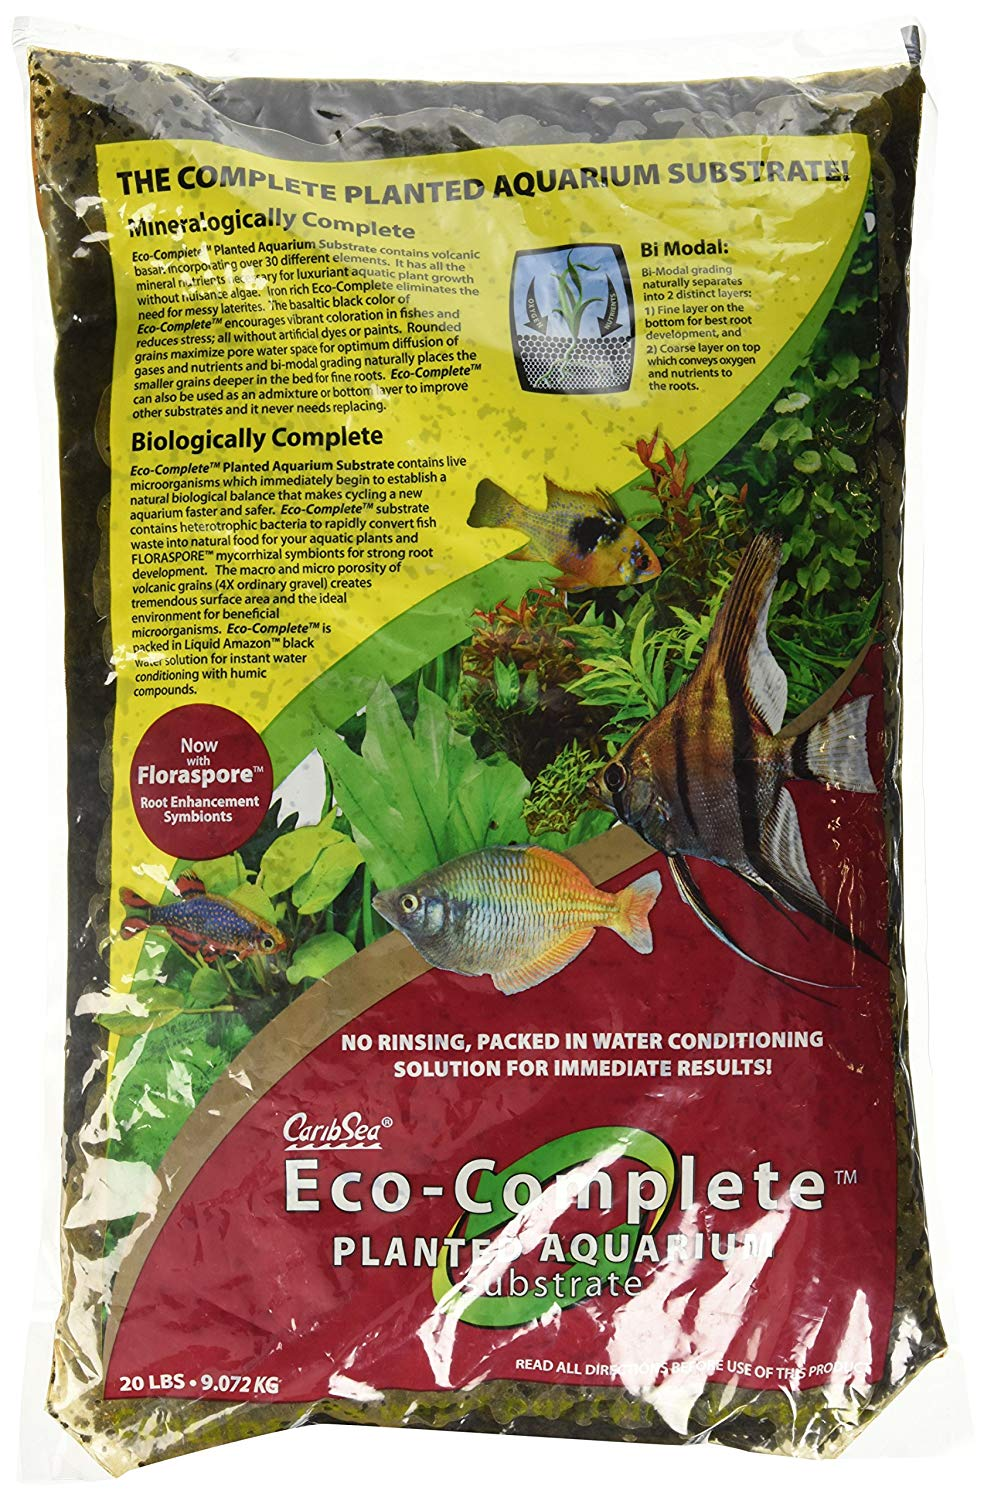 Carib Sea Eco Complete Planted Aquarium Substrate Review by www.puppyurl.com